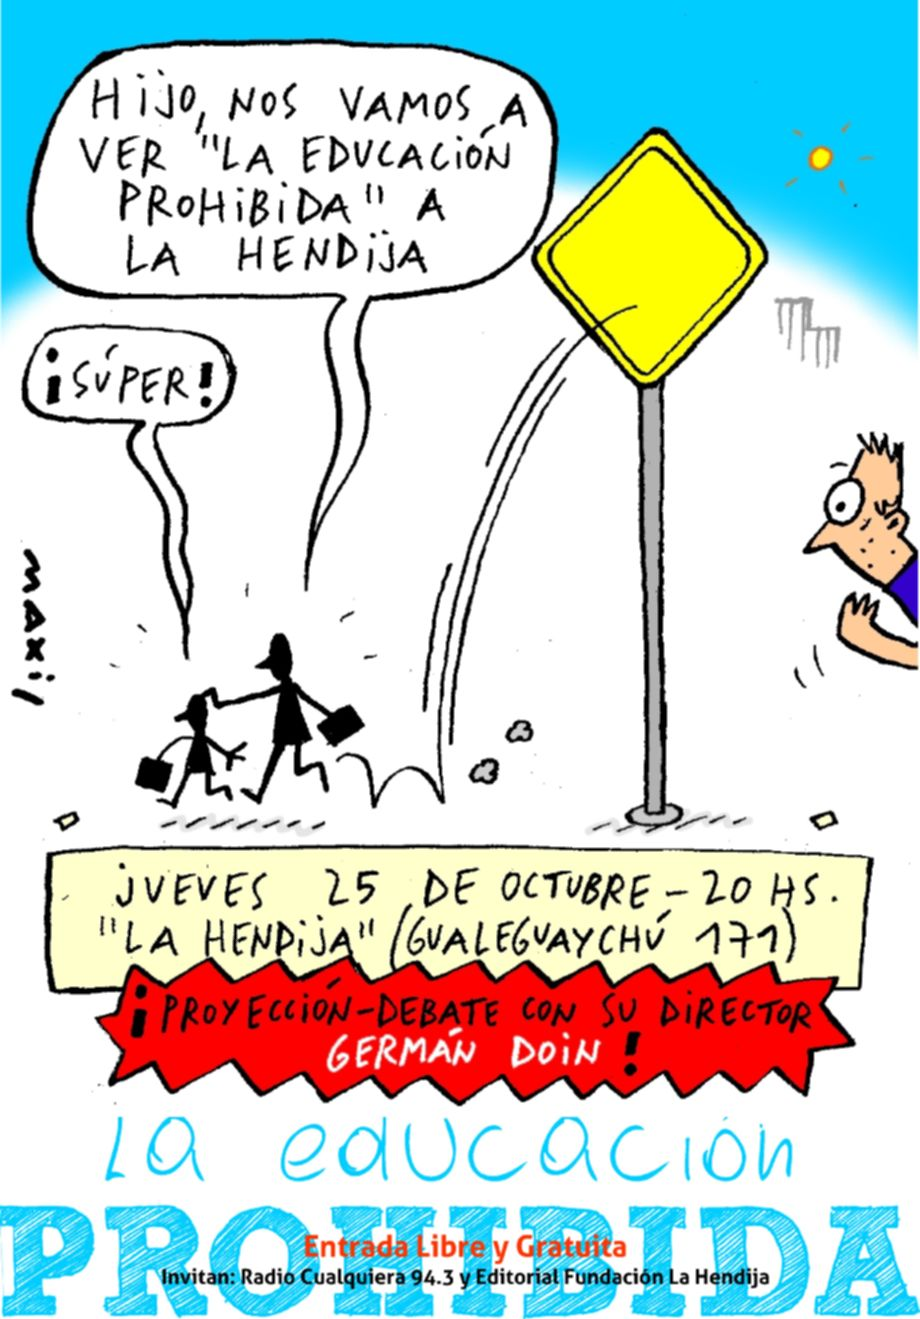 http://humitos.files.wordpress.com/2012/10/afiche-mail.jpg